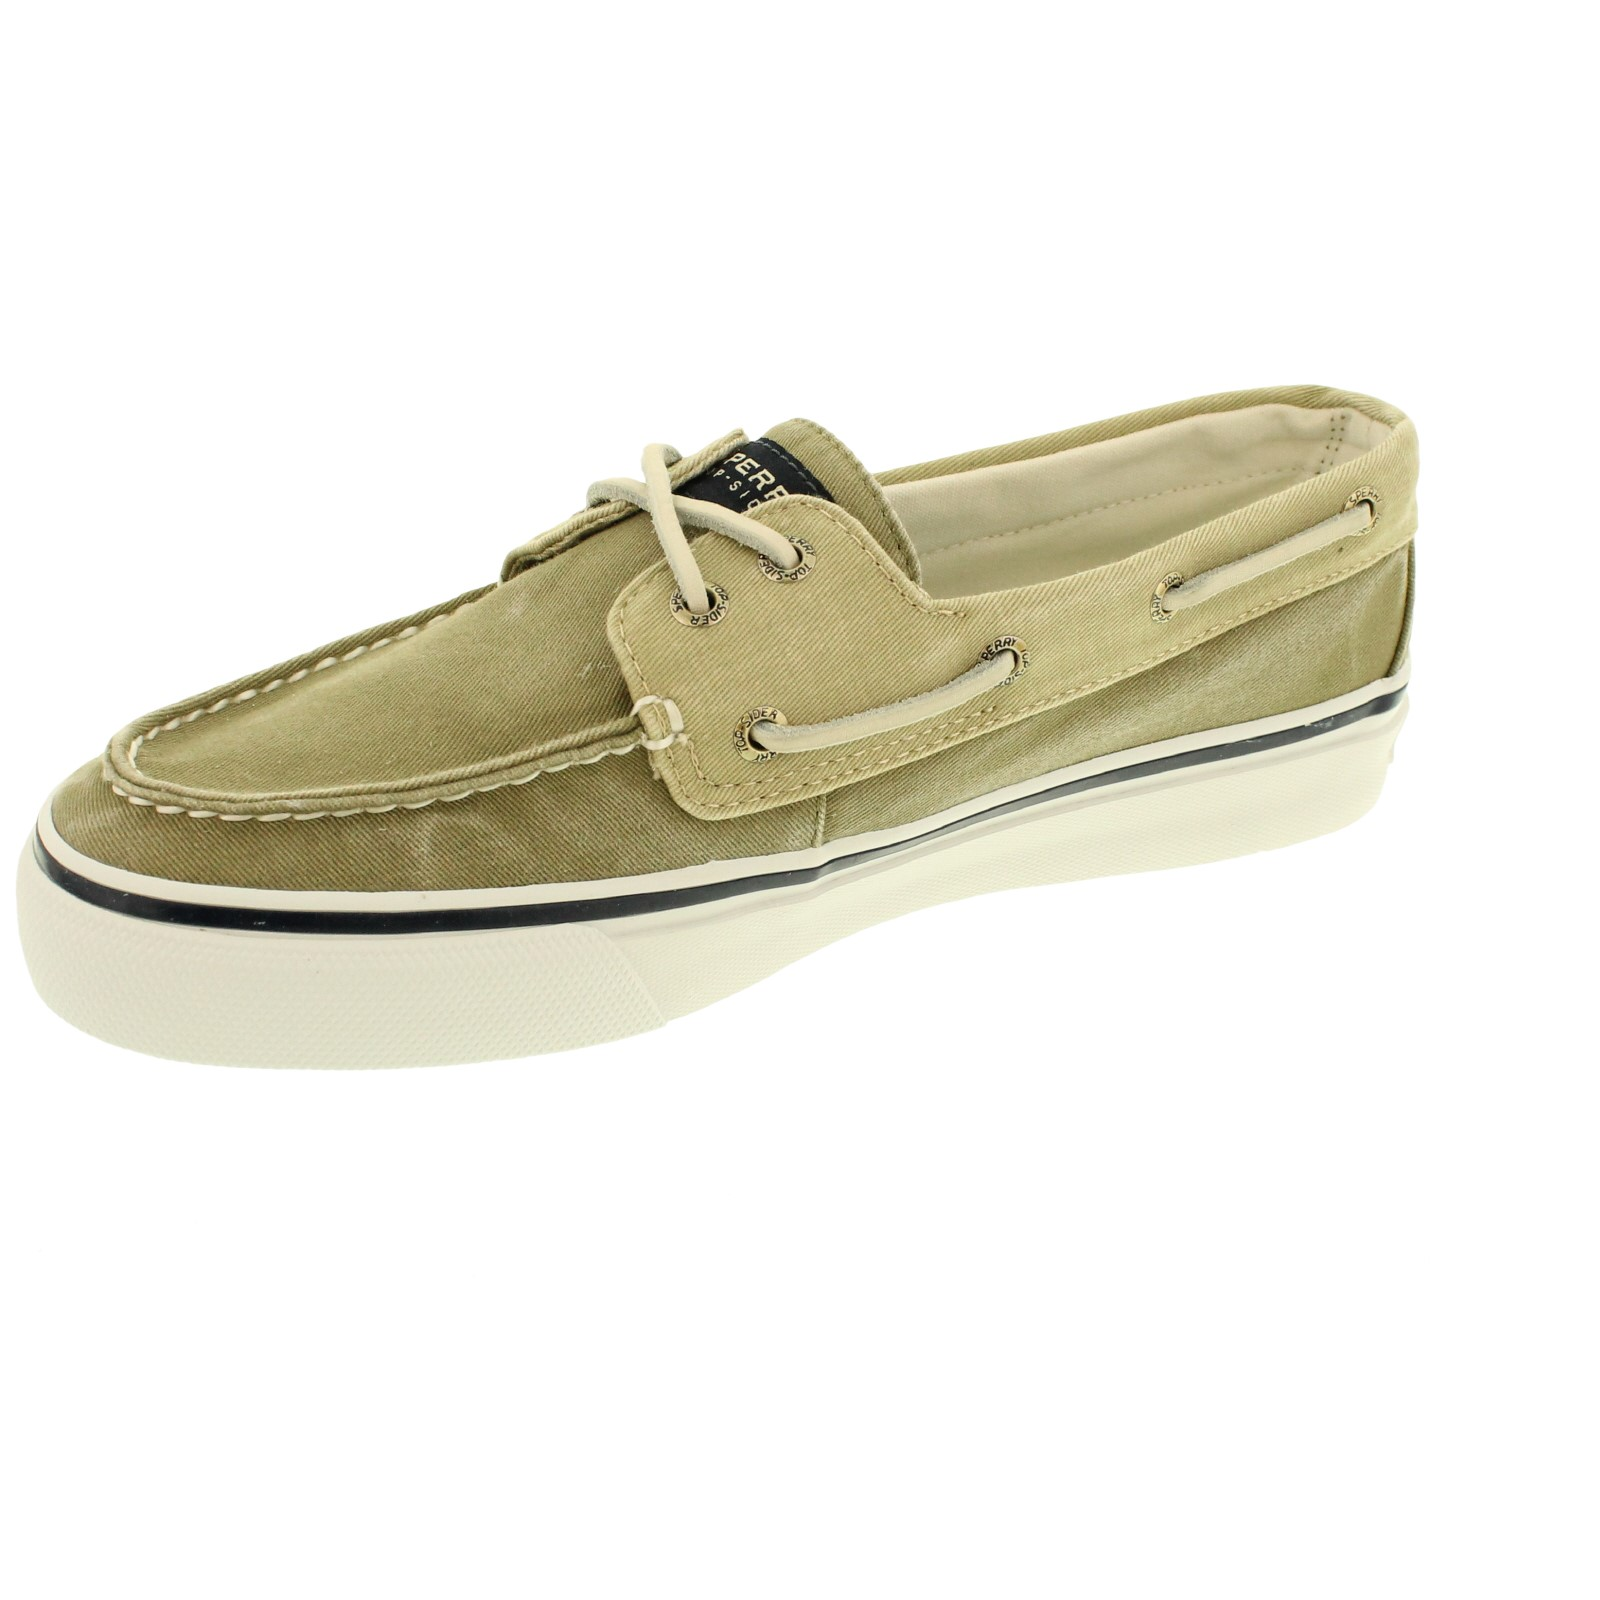 560586d3421932 Next. add to favorites. Men s Sperry Top-sider